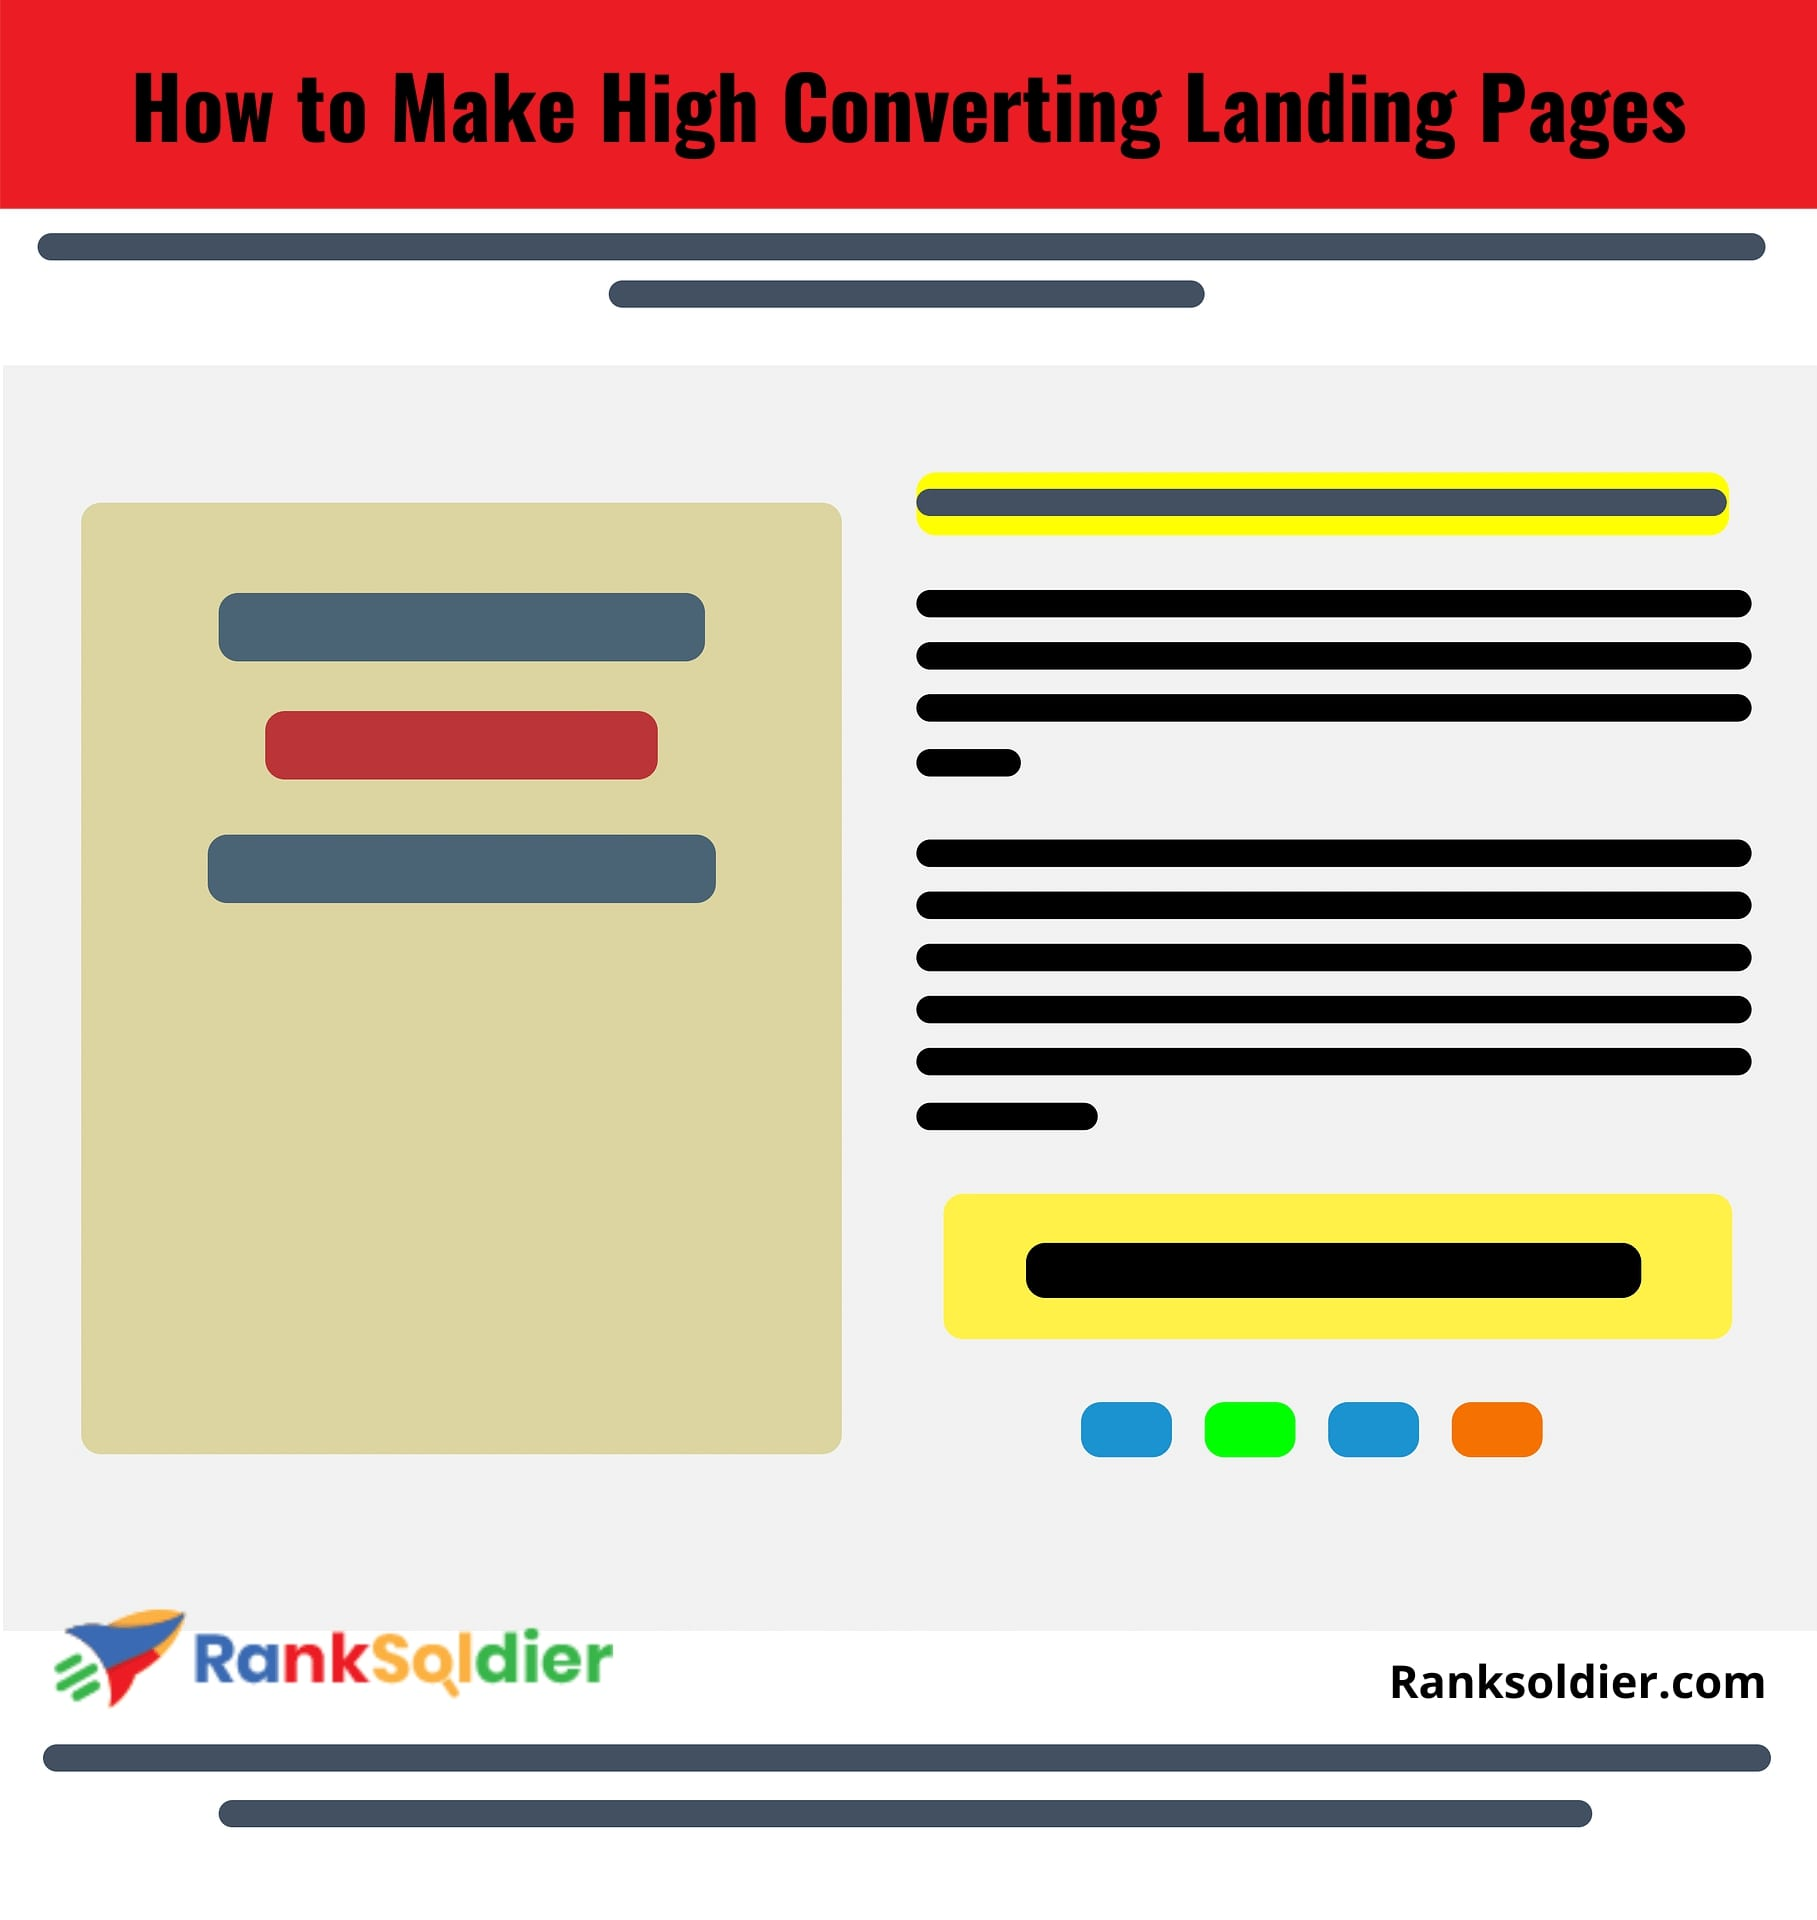 How to Make High Converting Landing Pages